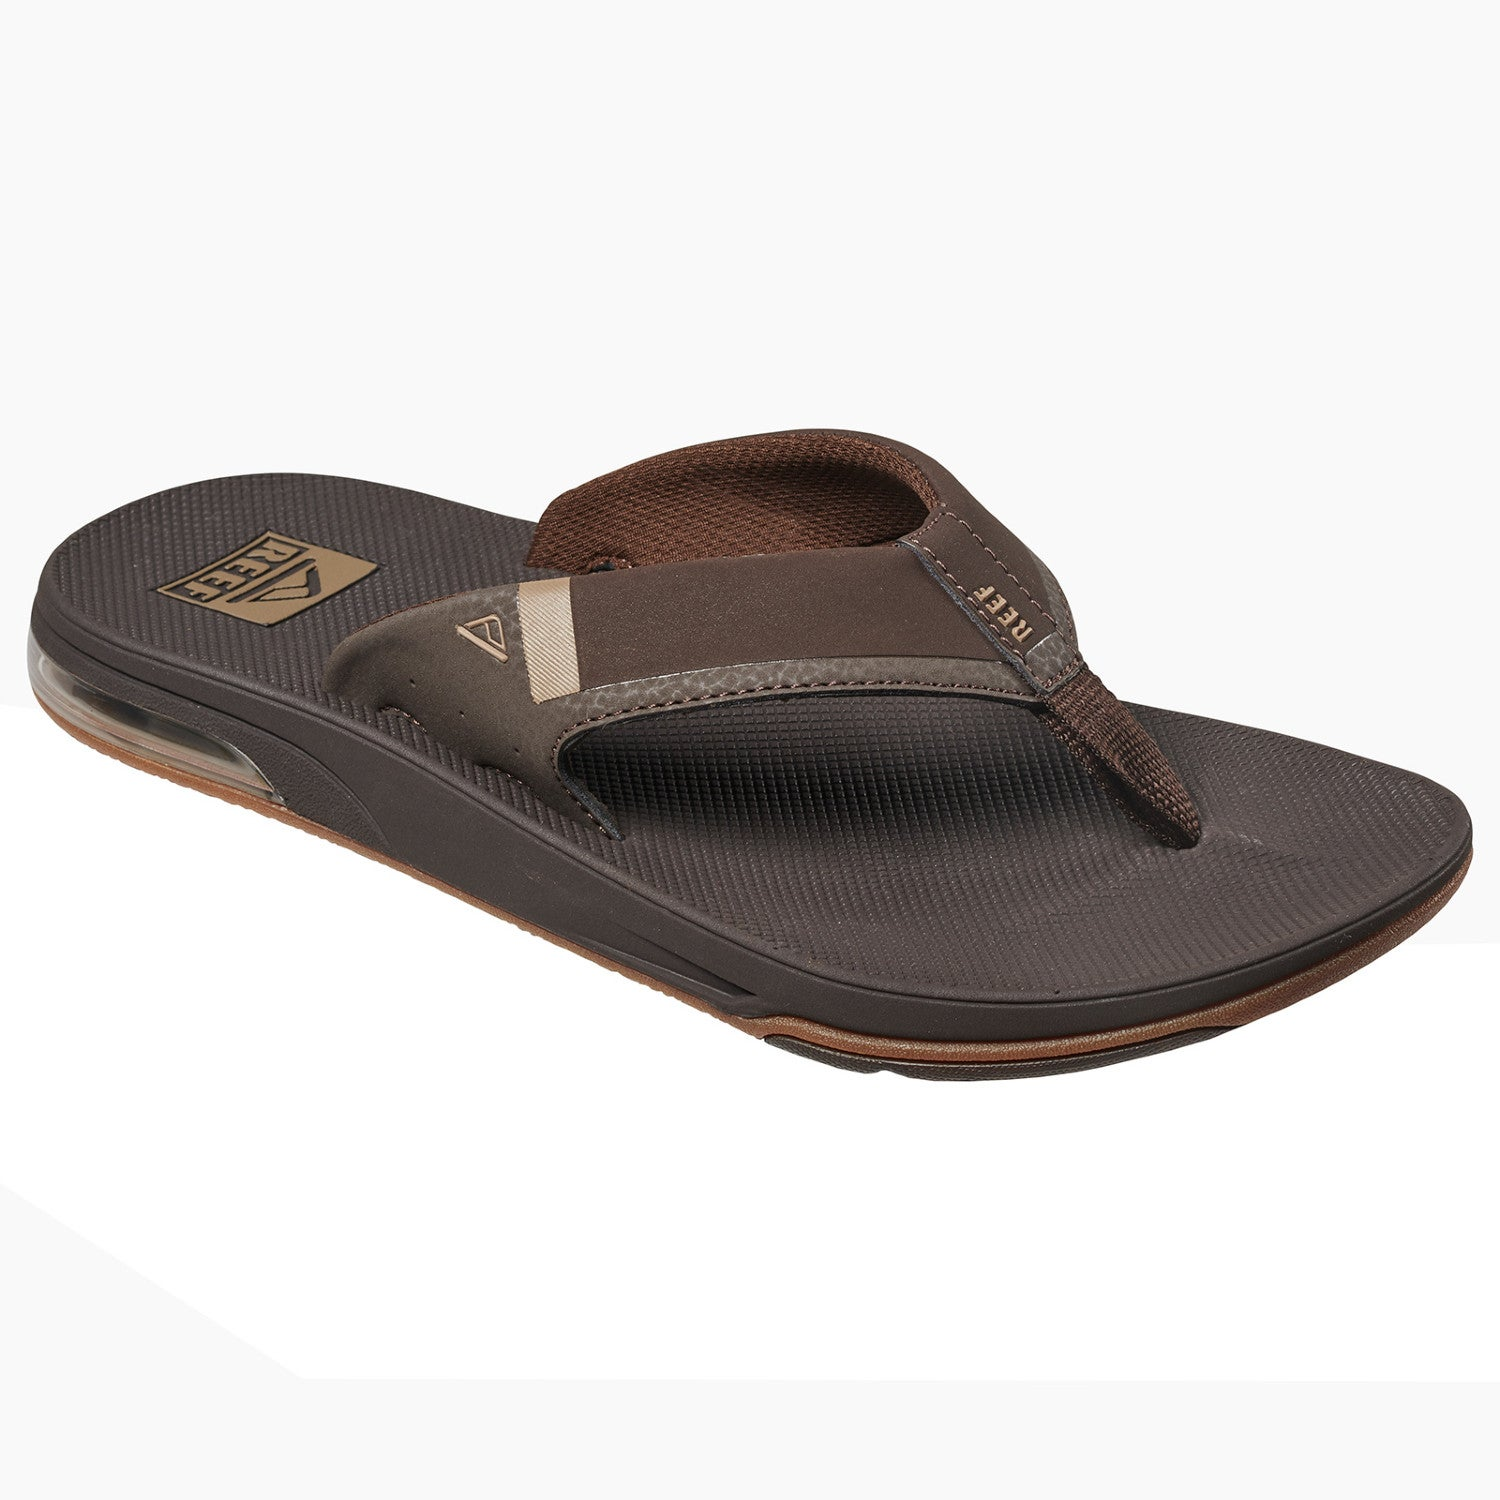 6944d4d54d8f Reef Fanning Low Mens Footwear Sandals - Brown All Sizes